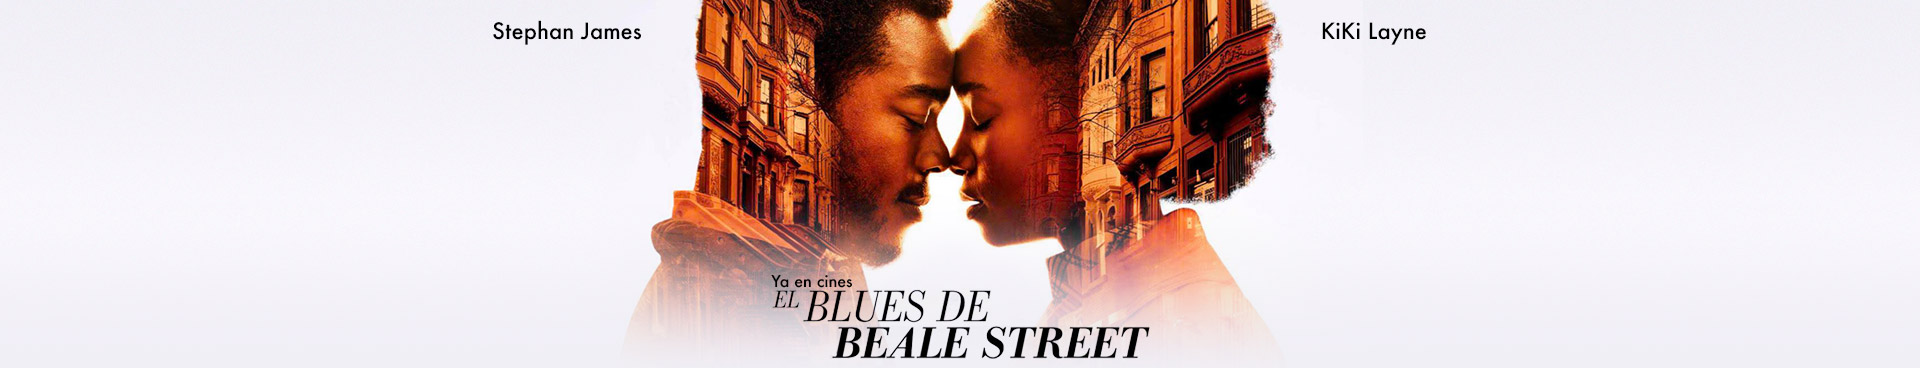 El-Blues-de-Beale